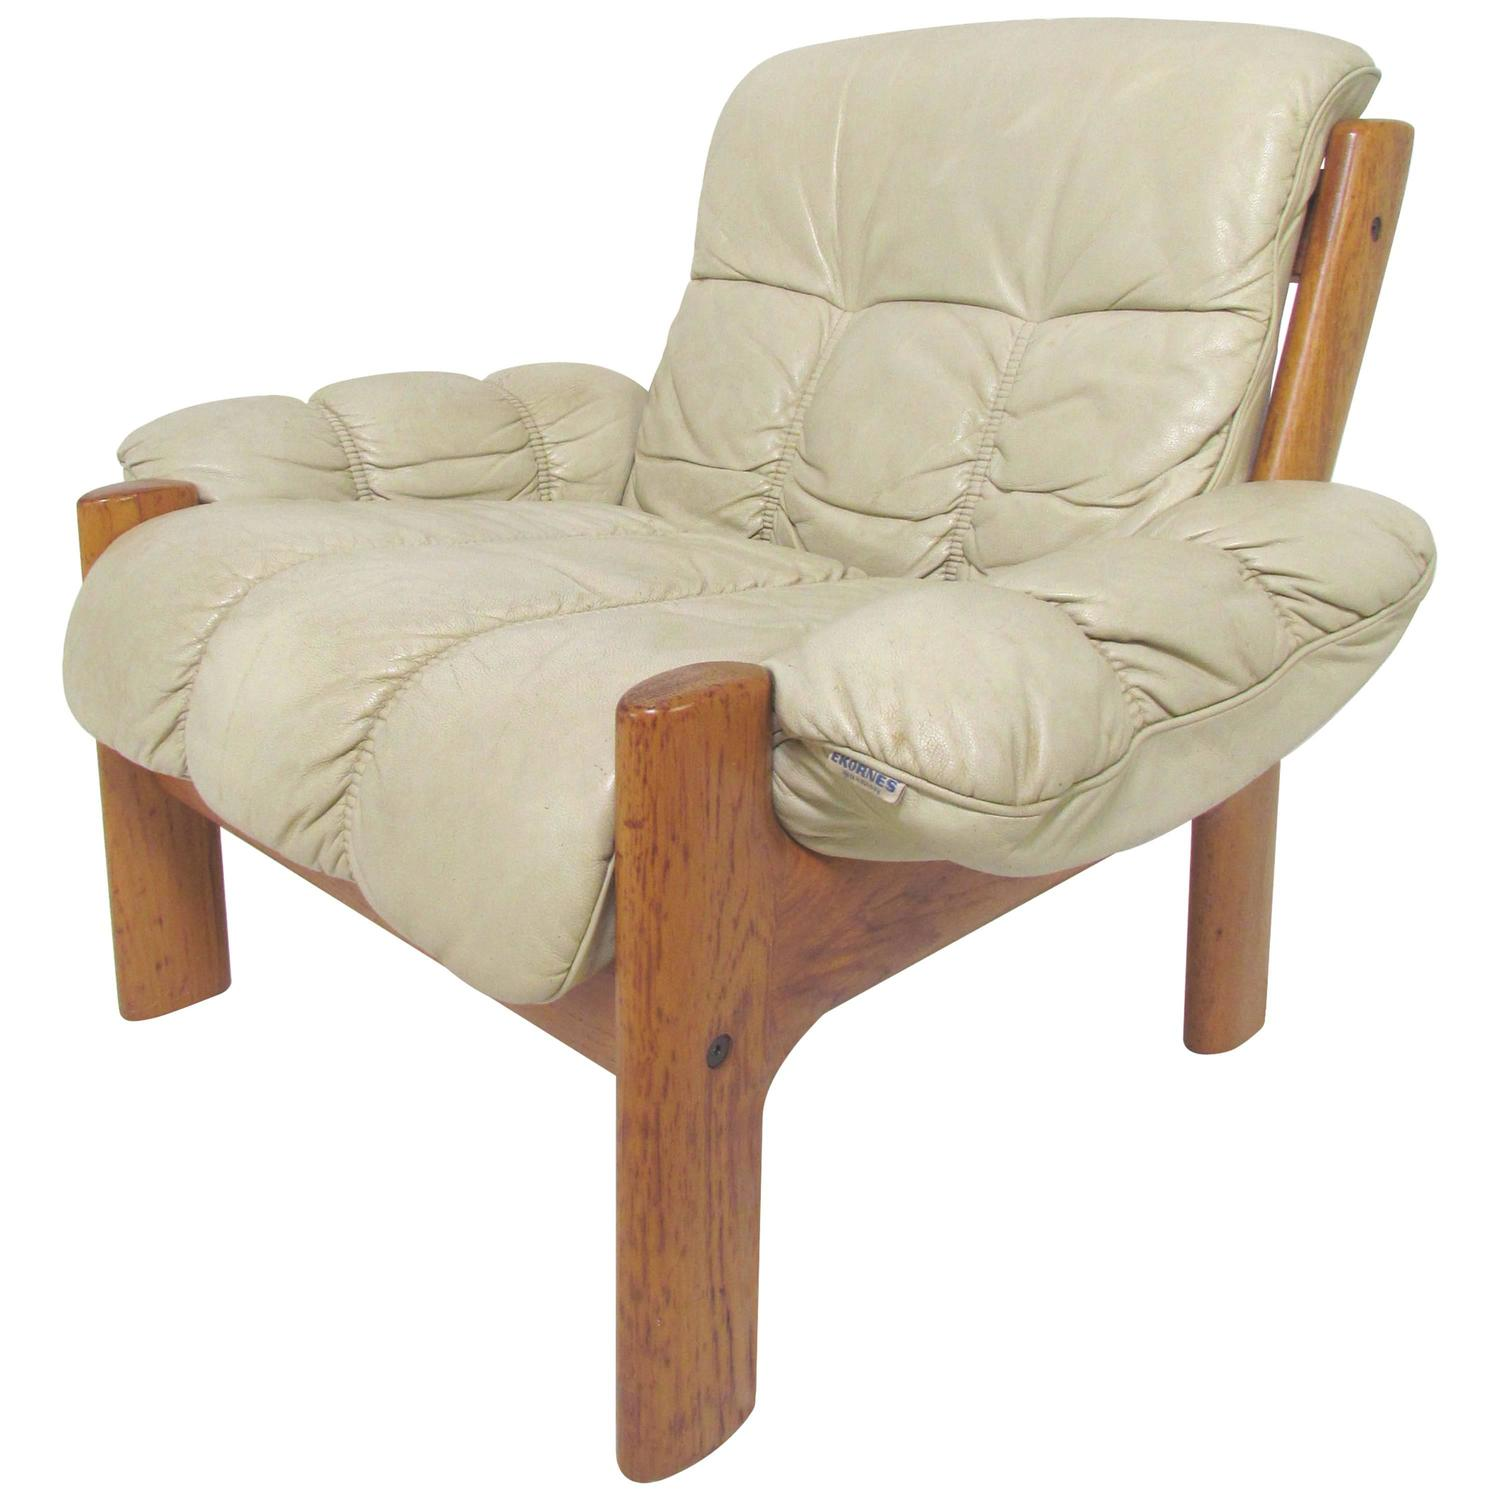 Scandinavian Modern Teak and Leather Lounge Chair by Ekornes at